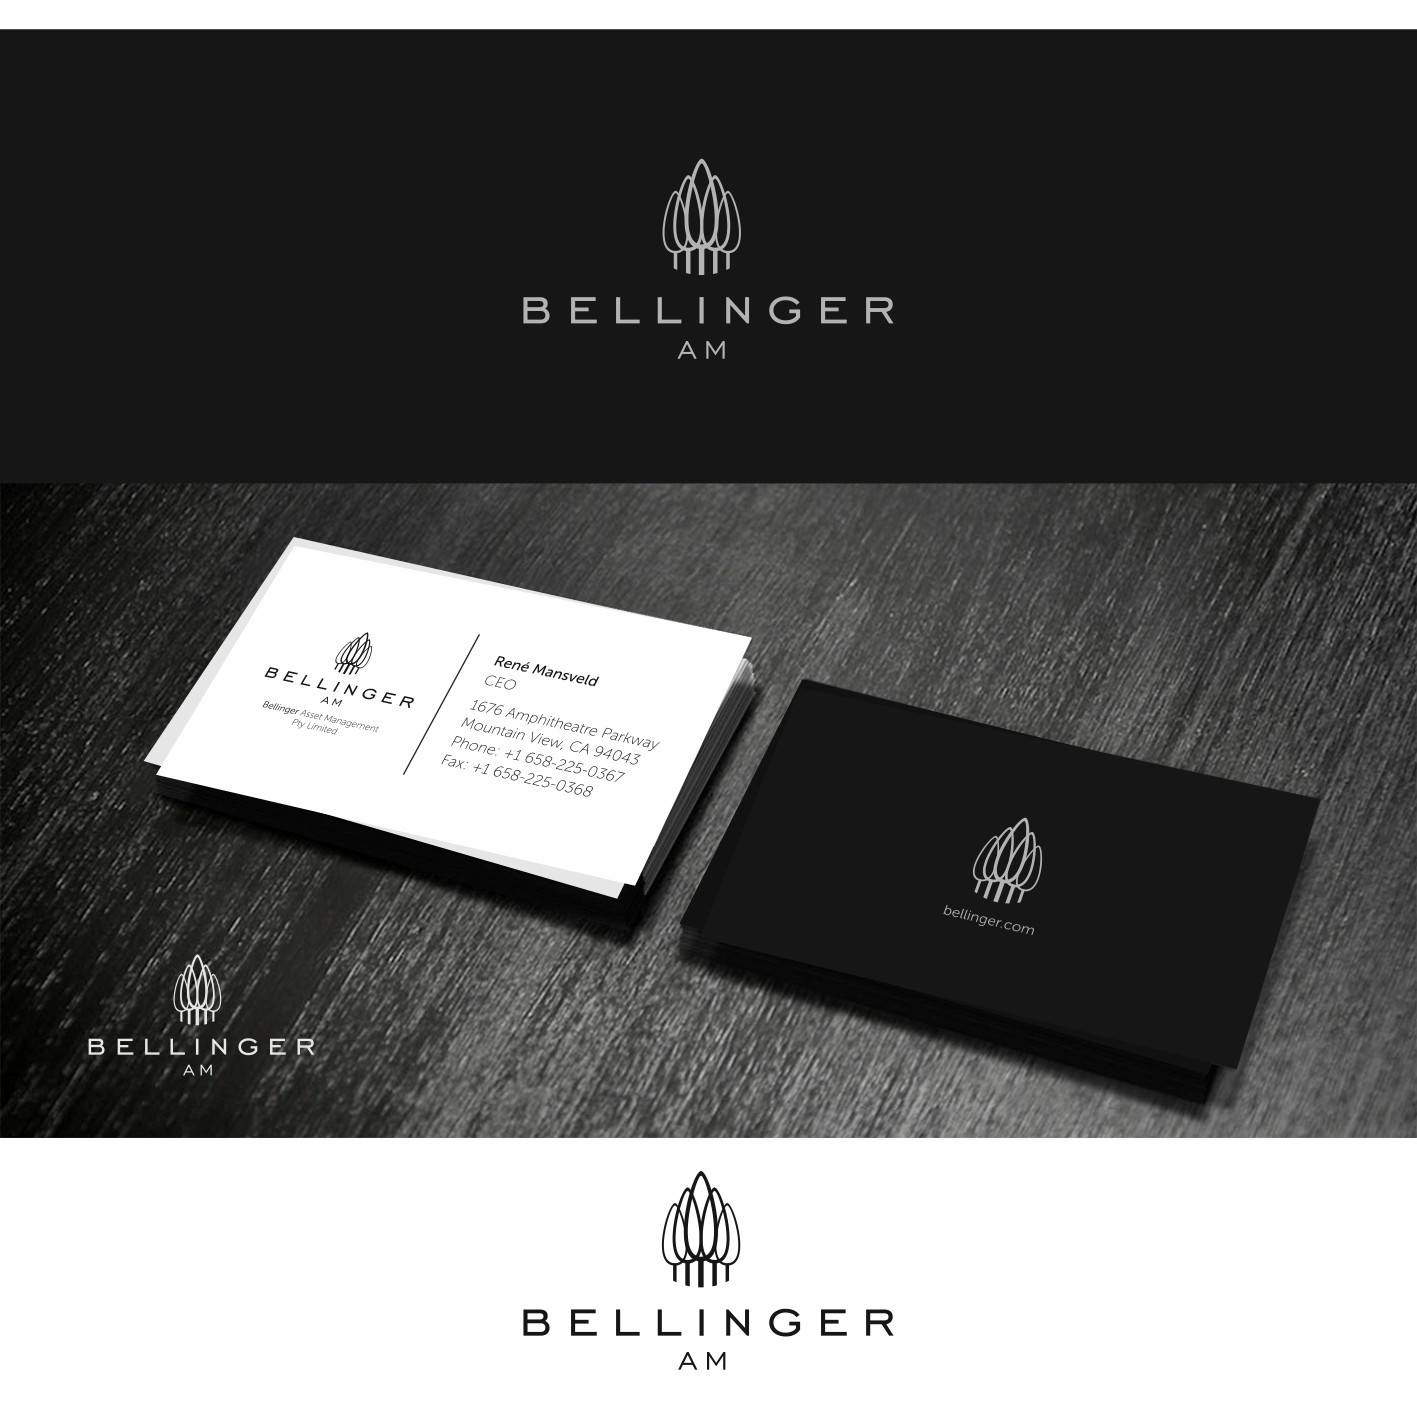 Create the next logo and business card for Bellinger AM.